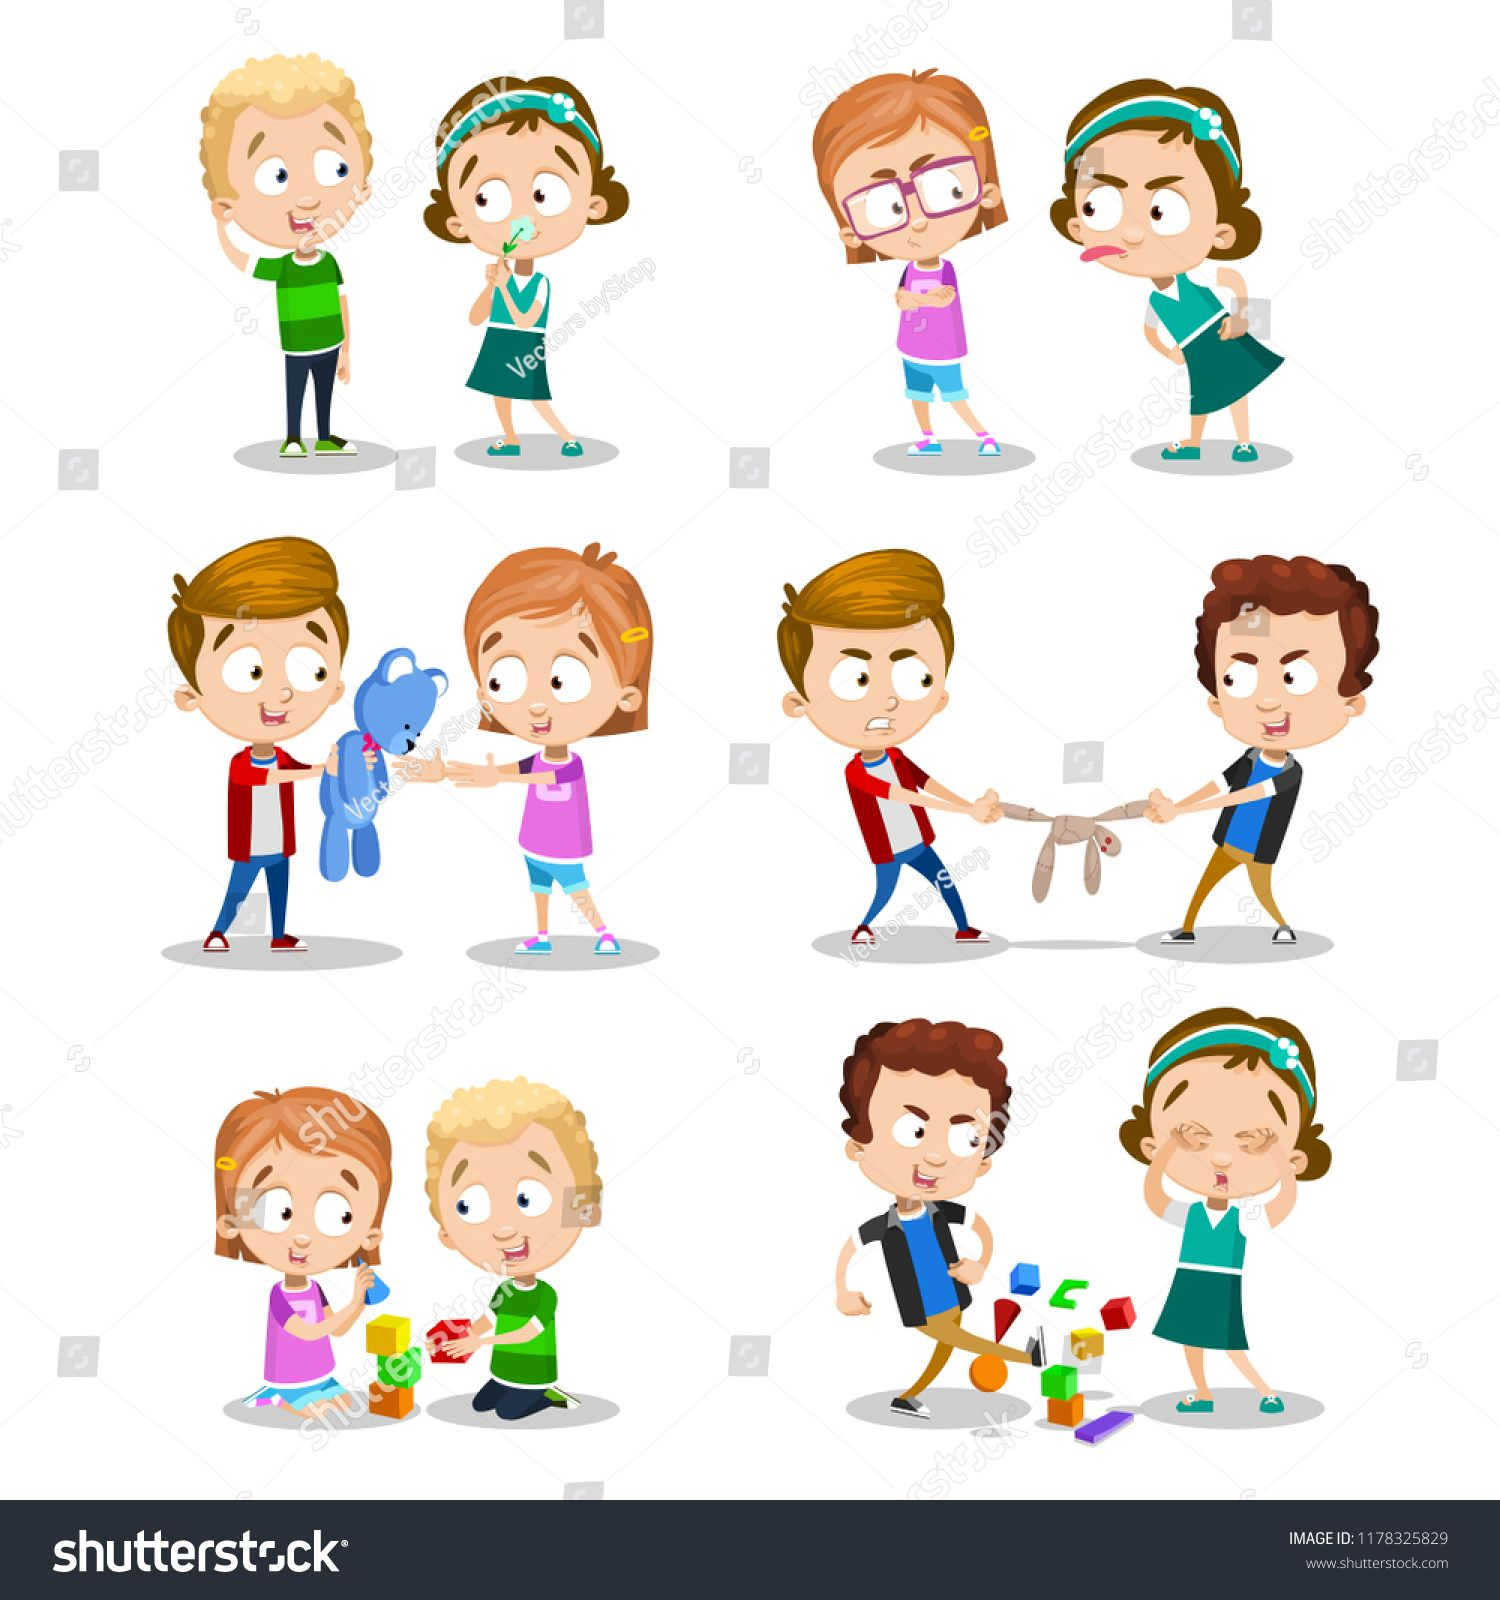 Funny Cartoon Images Of Boys good and bad behavior of a child. kids fighting over a toys